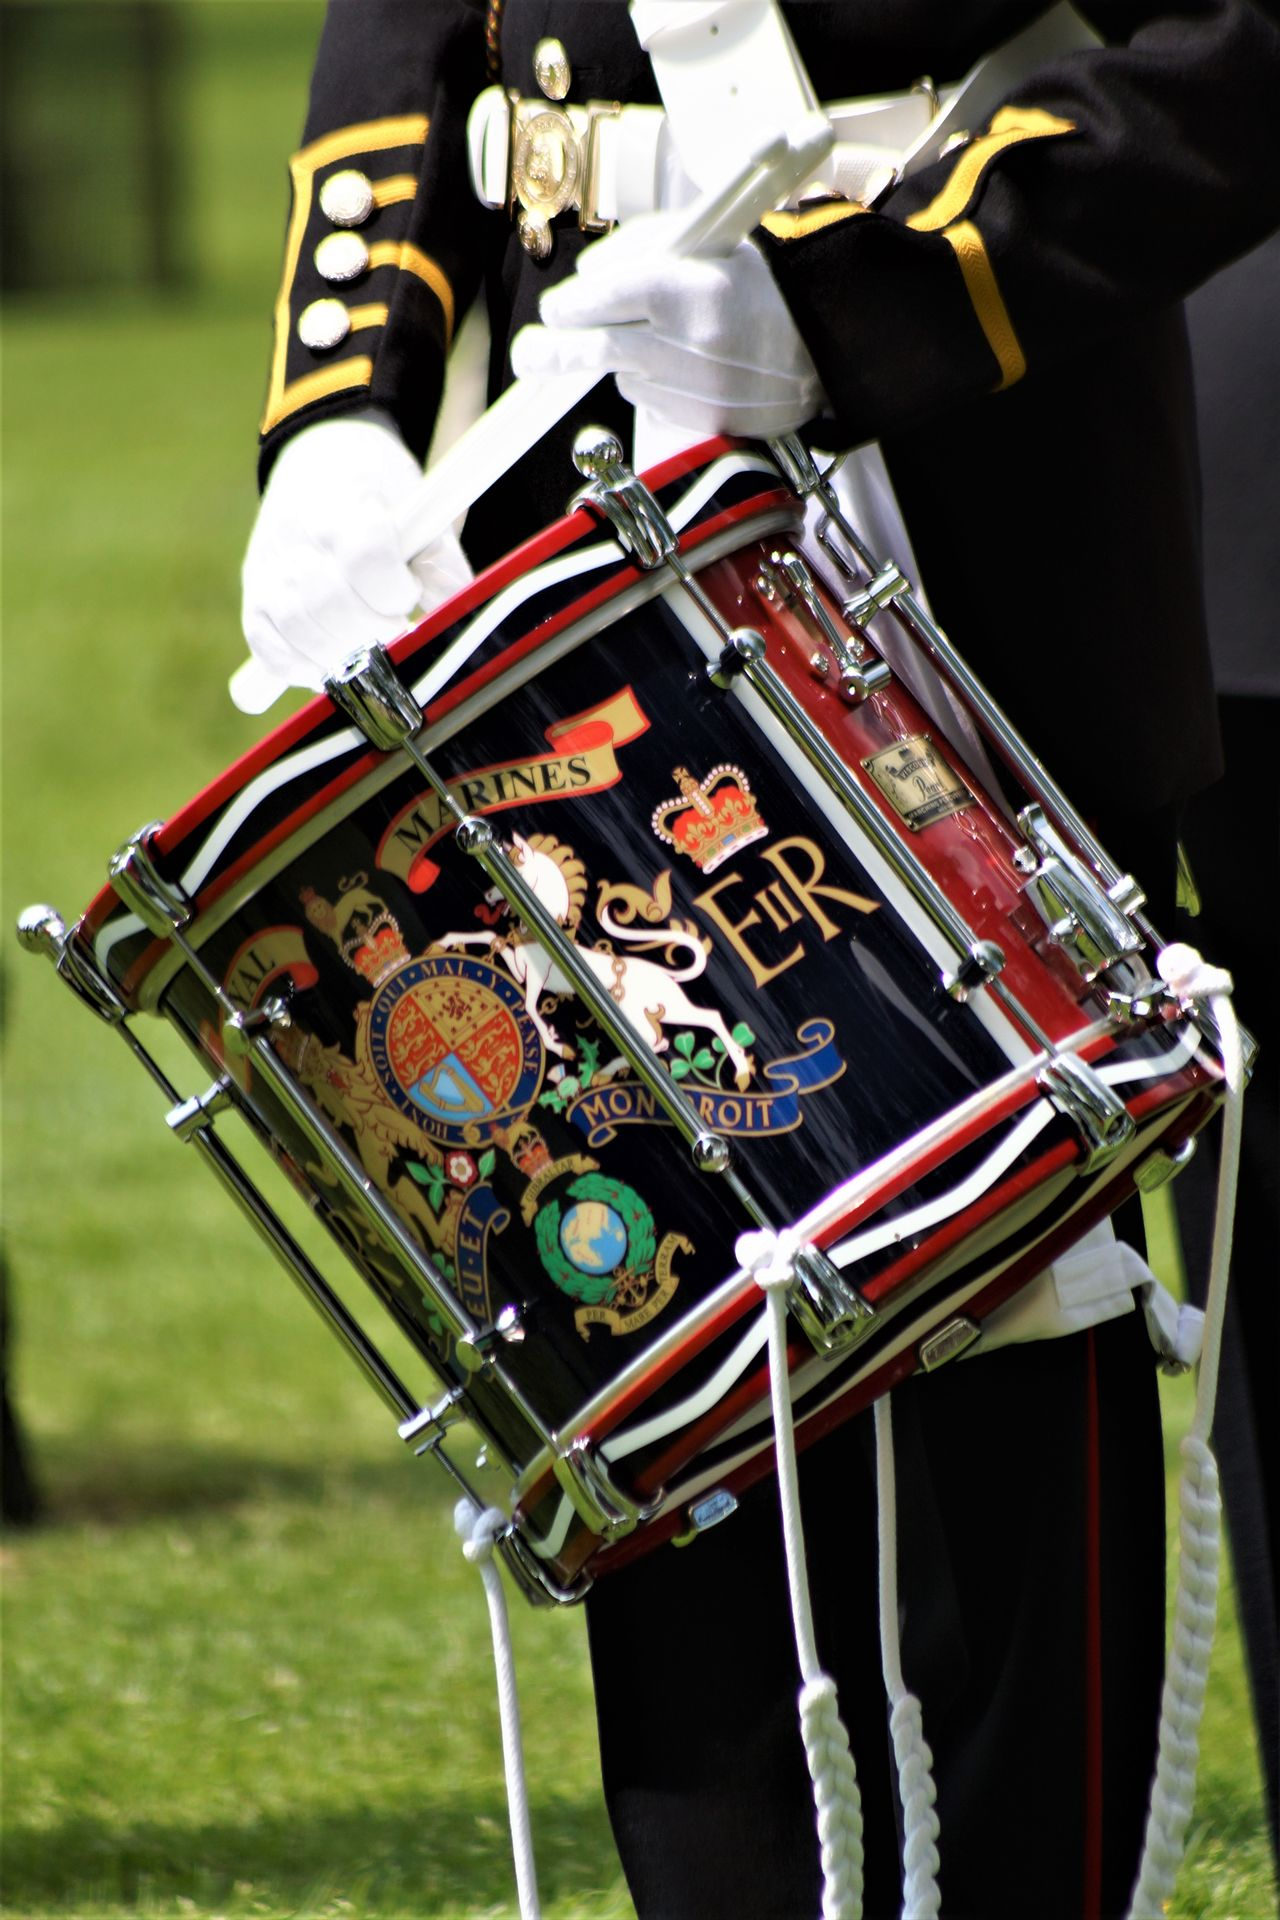 Arboretum Army British Army Ceremony Close-up Day Drums Gloves Instruments Marines Corps Military National Memorial Arboretum Outdoors Percussion Instrument Uniform